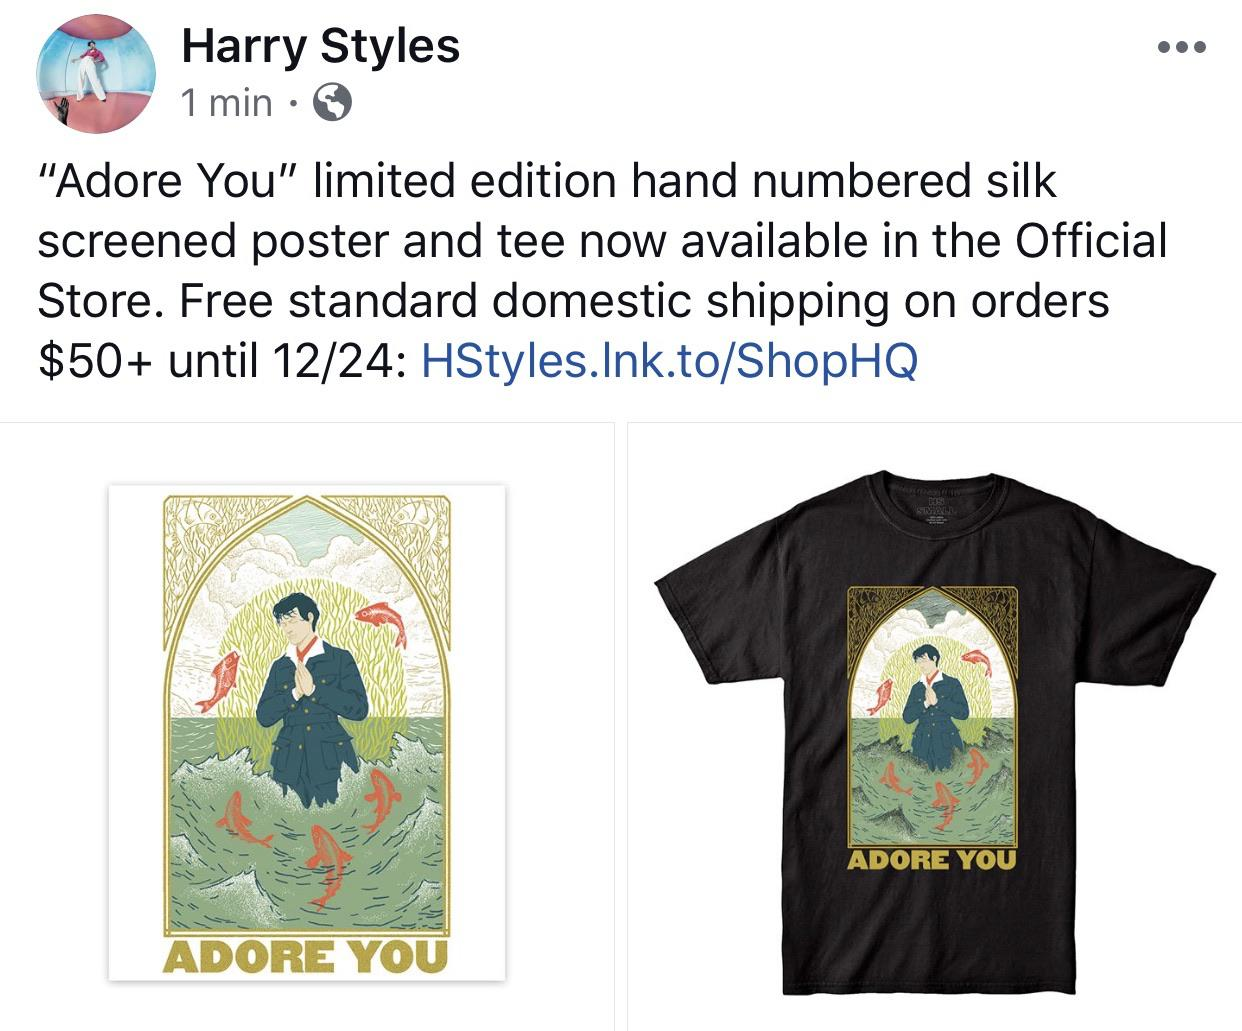 adore you poster and t shirt